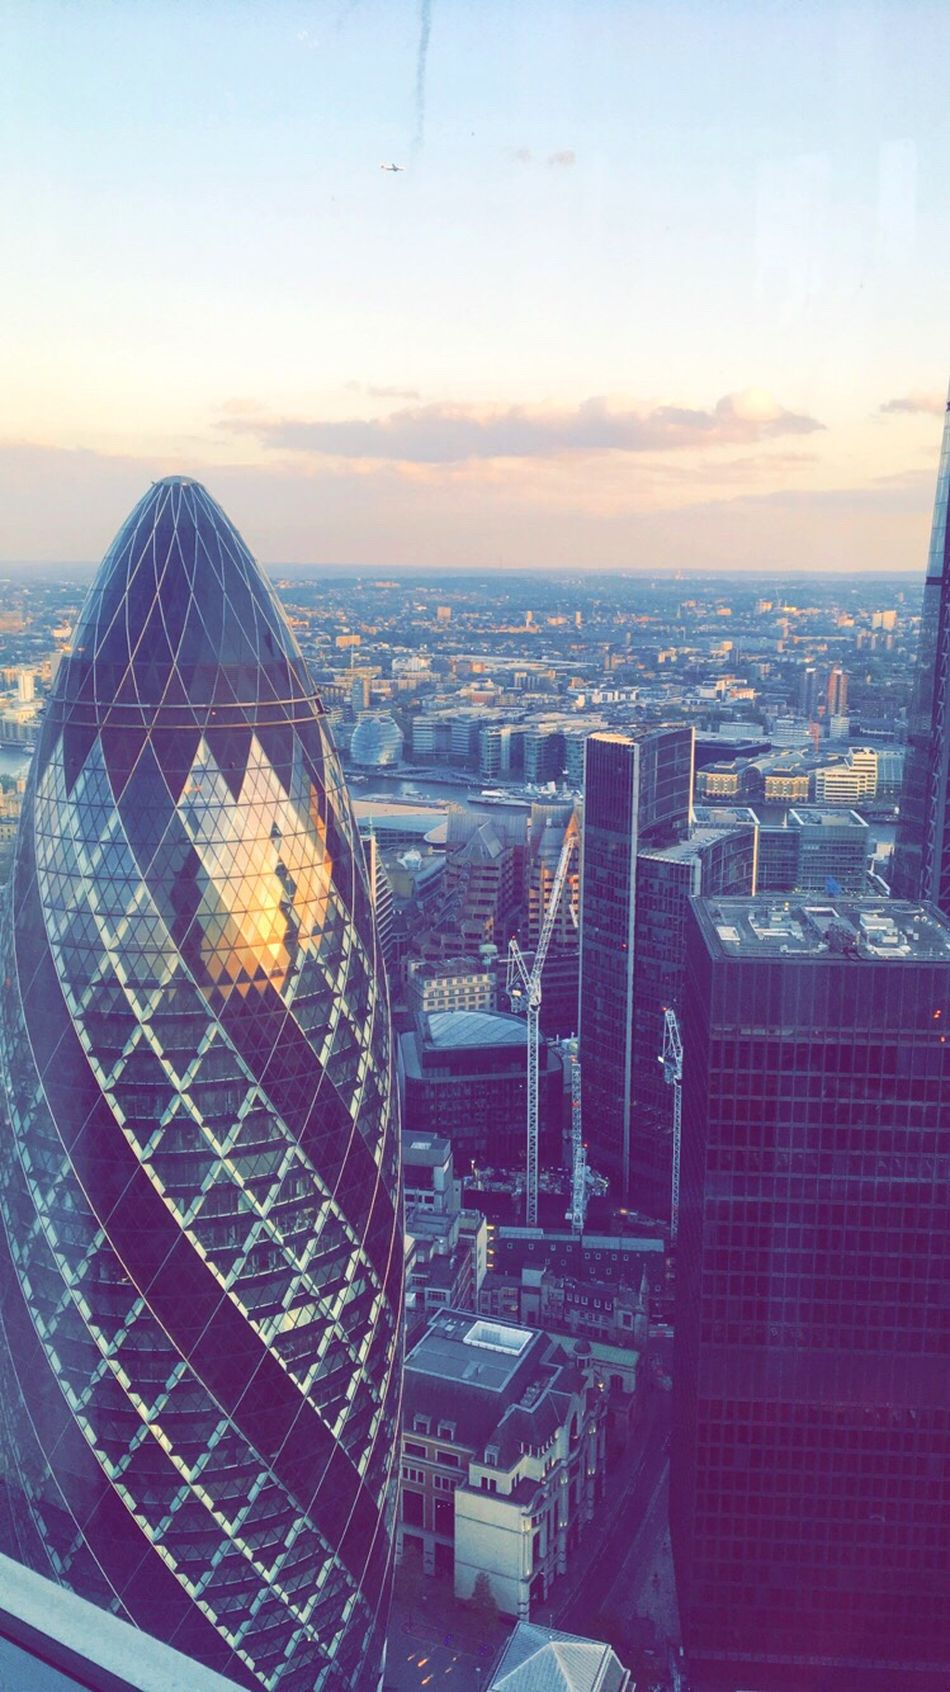 Gherkin Tower City London Sunset Architecture EyeEmNewHere EyeEmNewHere